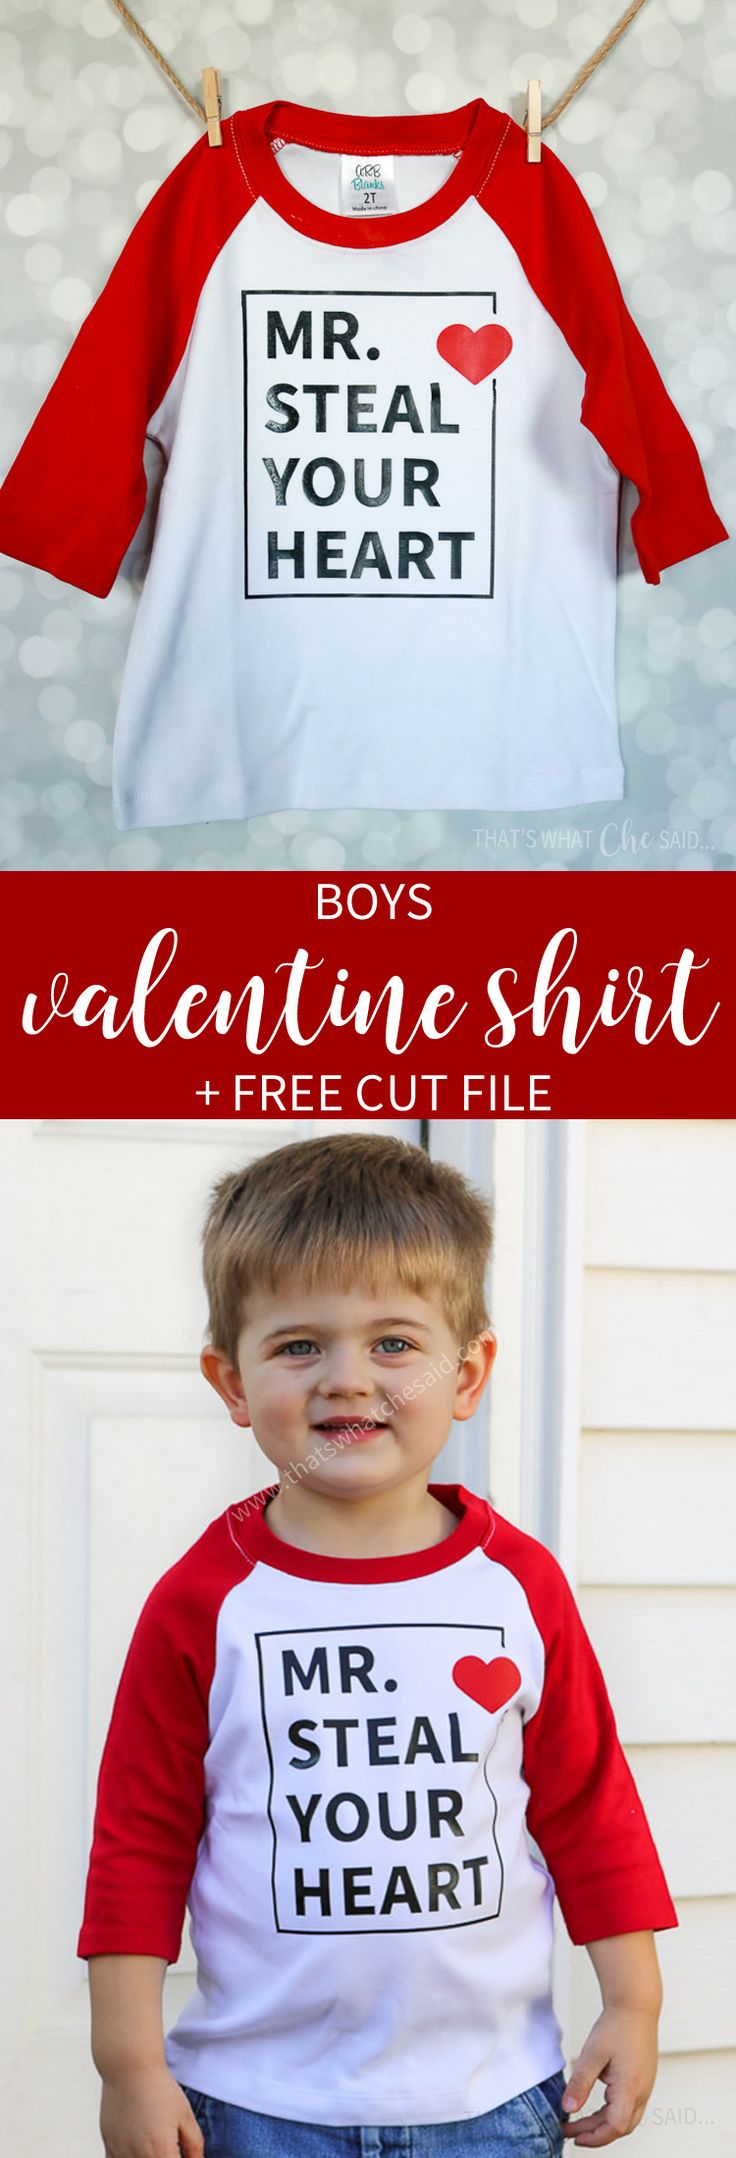 Design your own t-shirt for toddlers - Boys Valentine Shirt Design Free Cut File A Fun And Cute Valentines Shirt Idea